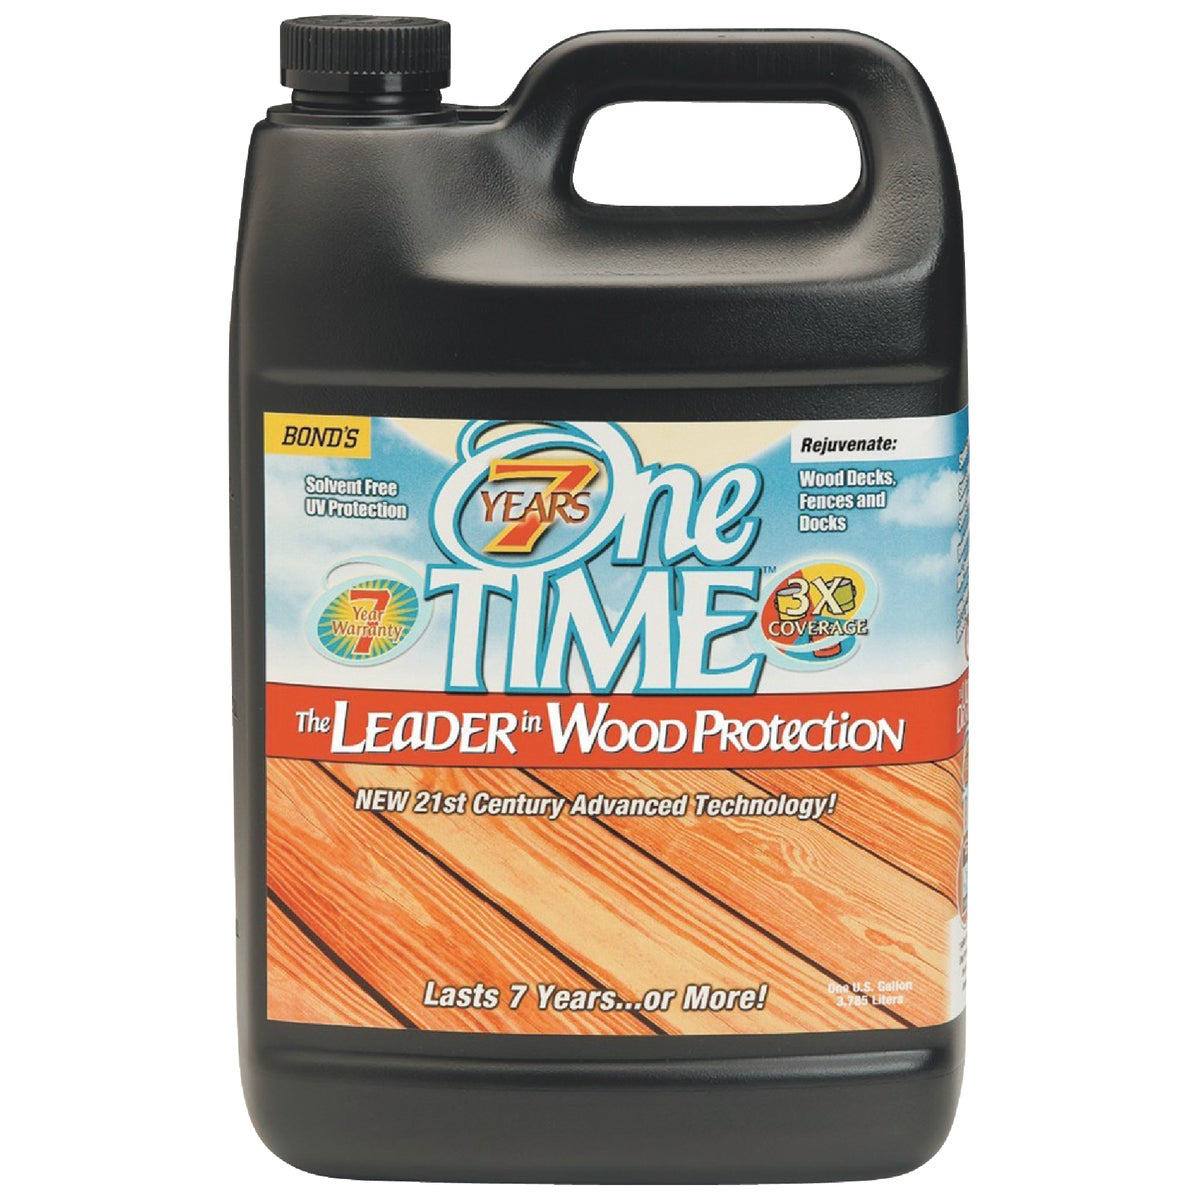 CLOVE BROWN WOOD SEALER